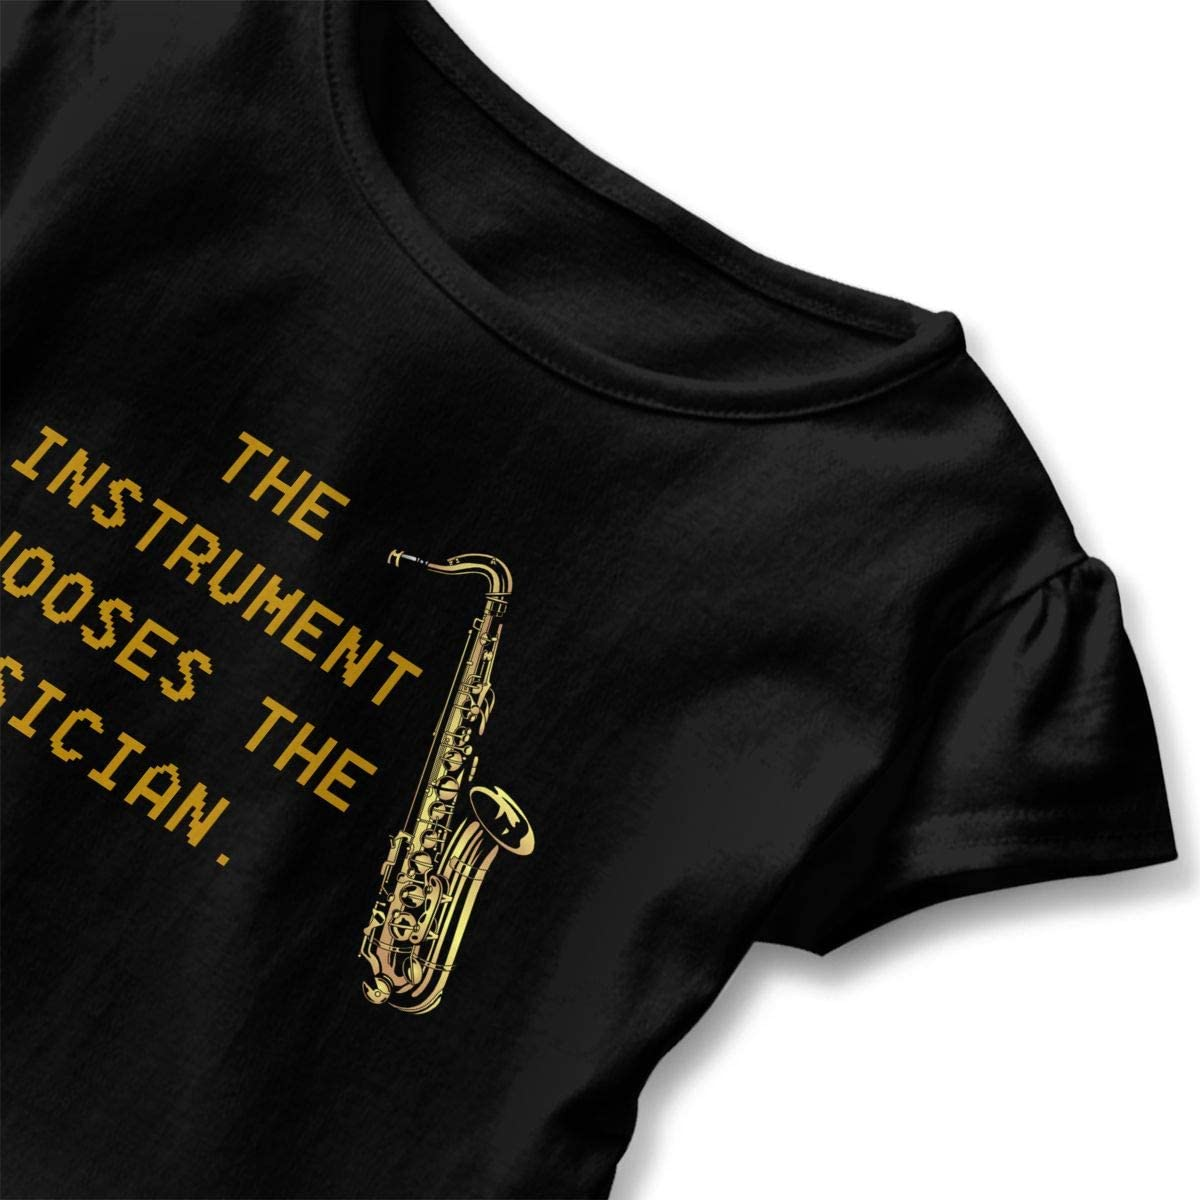 Cheng Jian Bo Saxophone The Instrument Chooses Toddler Girls T Shirt Kids Cotton Short Sleeve Ruffle Tee